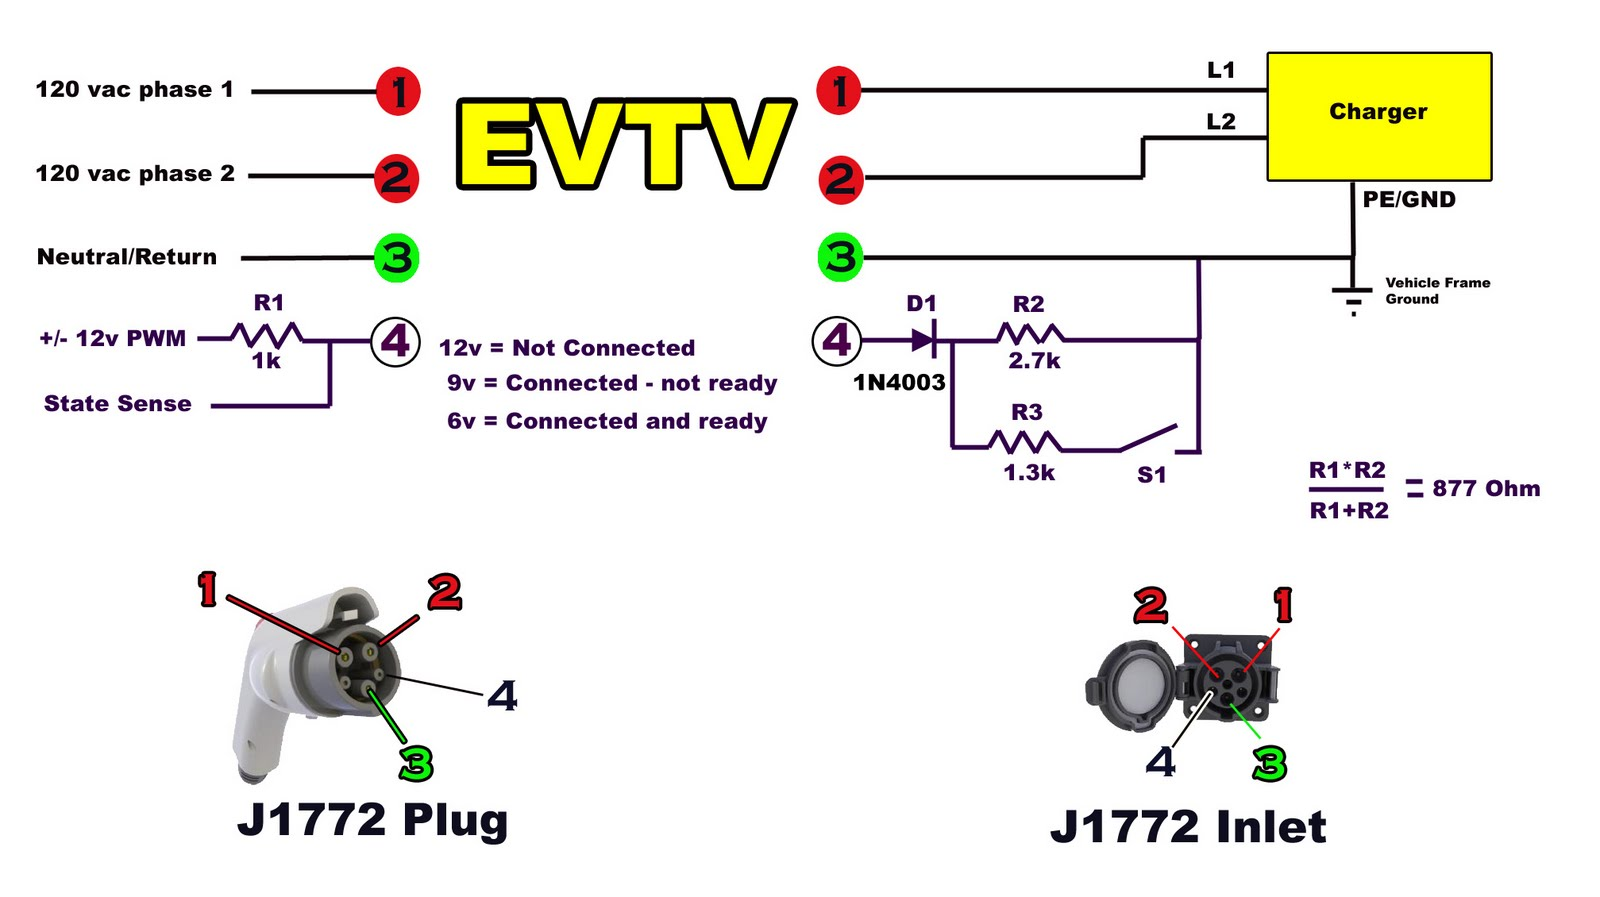 Wiring Diagram As Well As Universal Turn Signal Switch Wiring Diagram